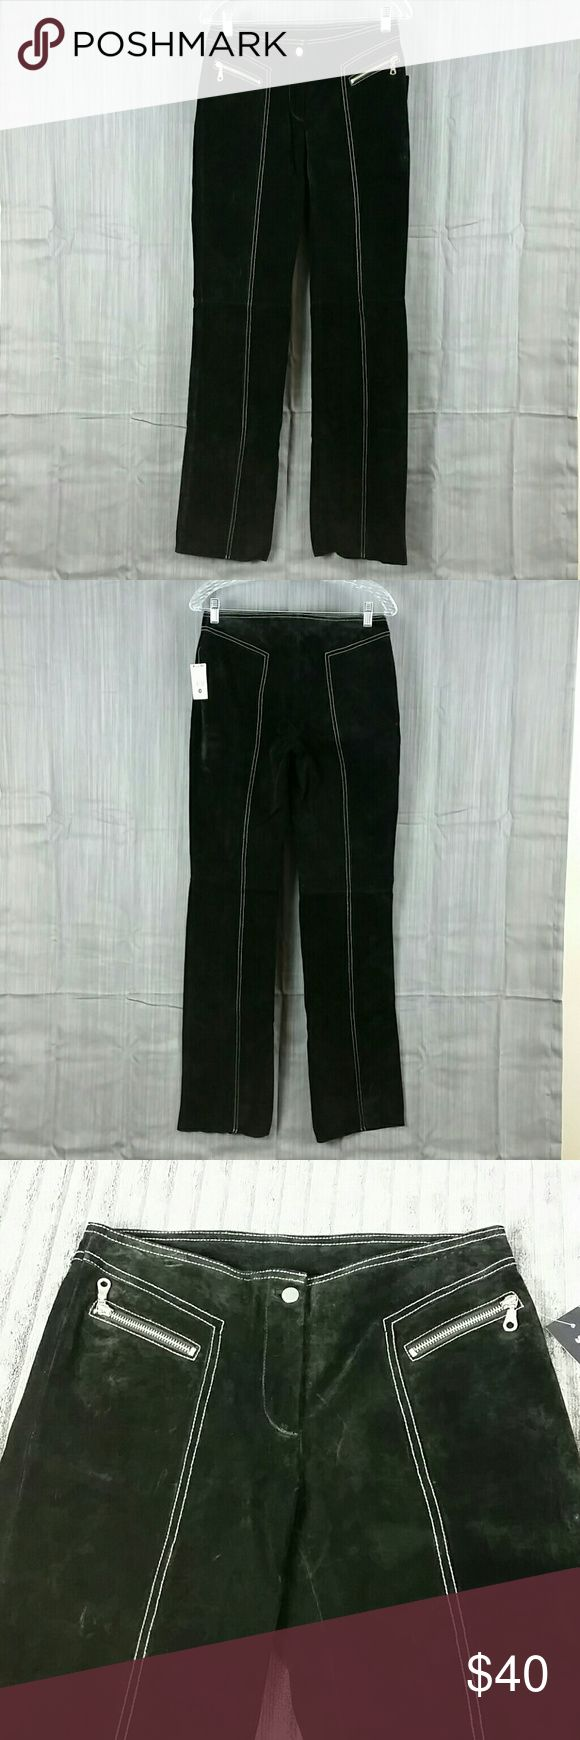 """Wilson Leather Maxima Black Suede Pants w/Tag Very nice pants.  Black with white stitching and 2 front zippered pockets.  They were pre-owned but never worn still has the tag on them.    100% Leather Shell,  100% Nylon Lining.     Measurements laying flat:  Waist 14"""",  Rise 12"""",  Inseam 34"""",  Thigh 9"""",  Leg Cuff 7.5"""" Wilsons Leather Pants"""